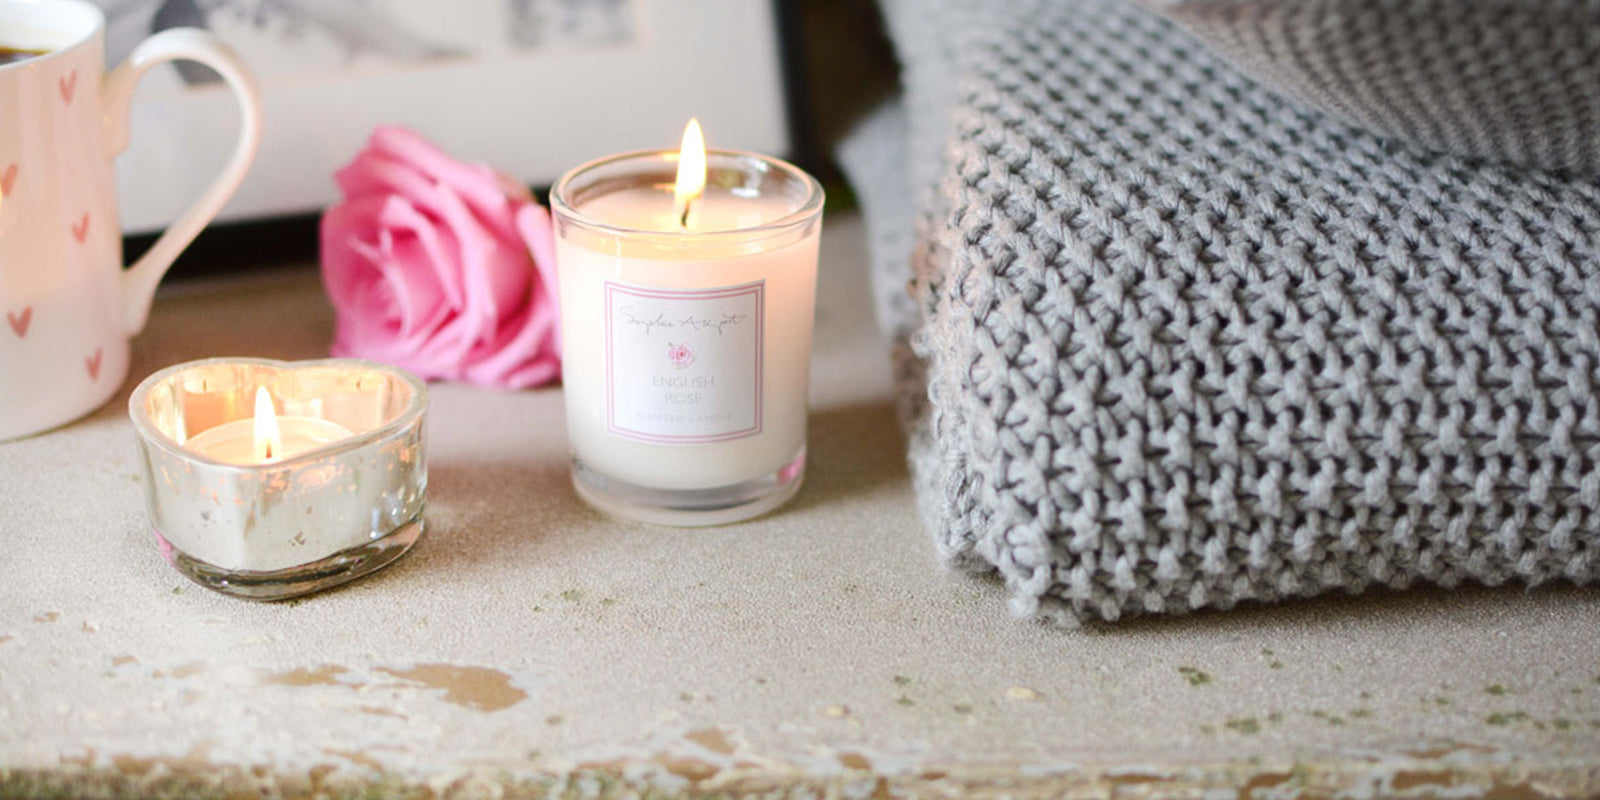 English Rose Home Scent by Sophie Allport